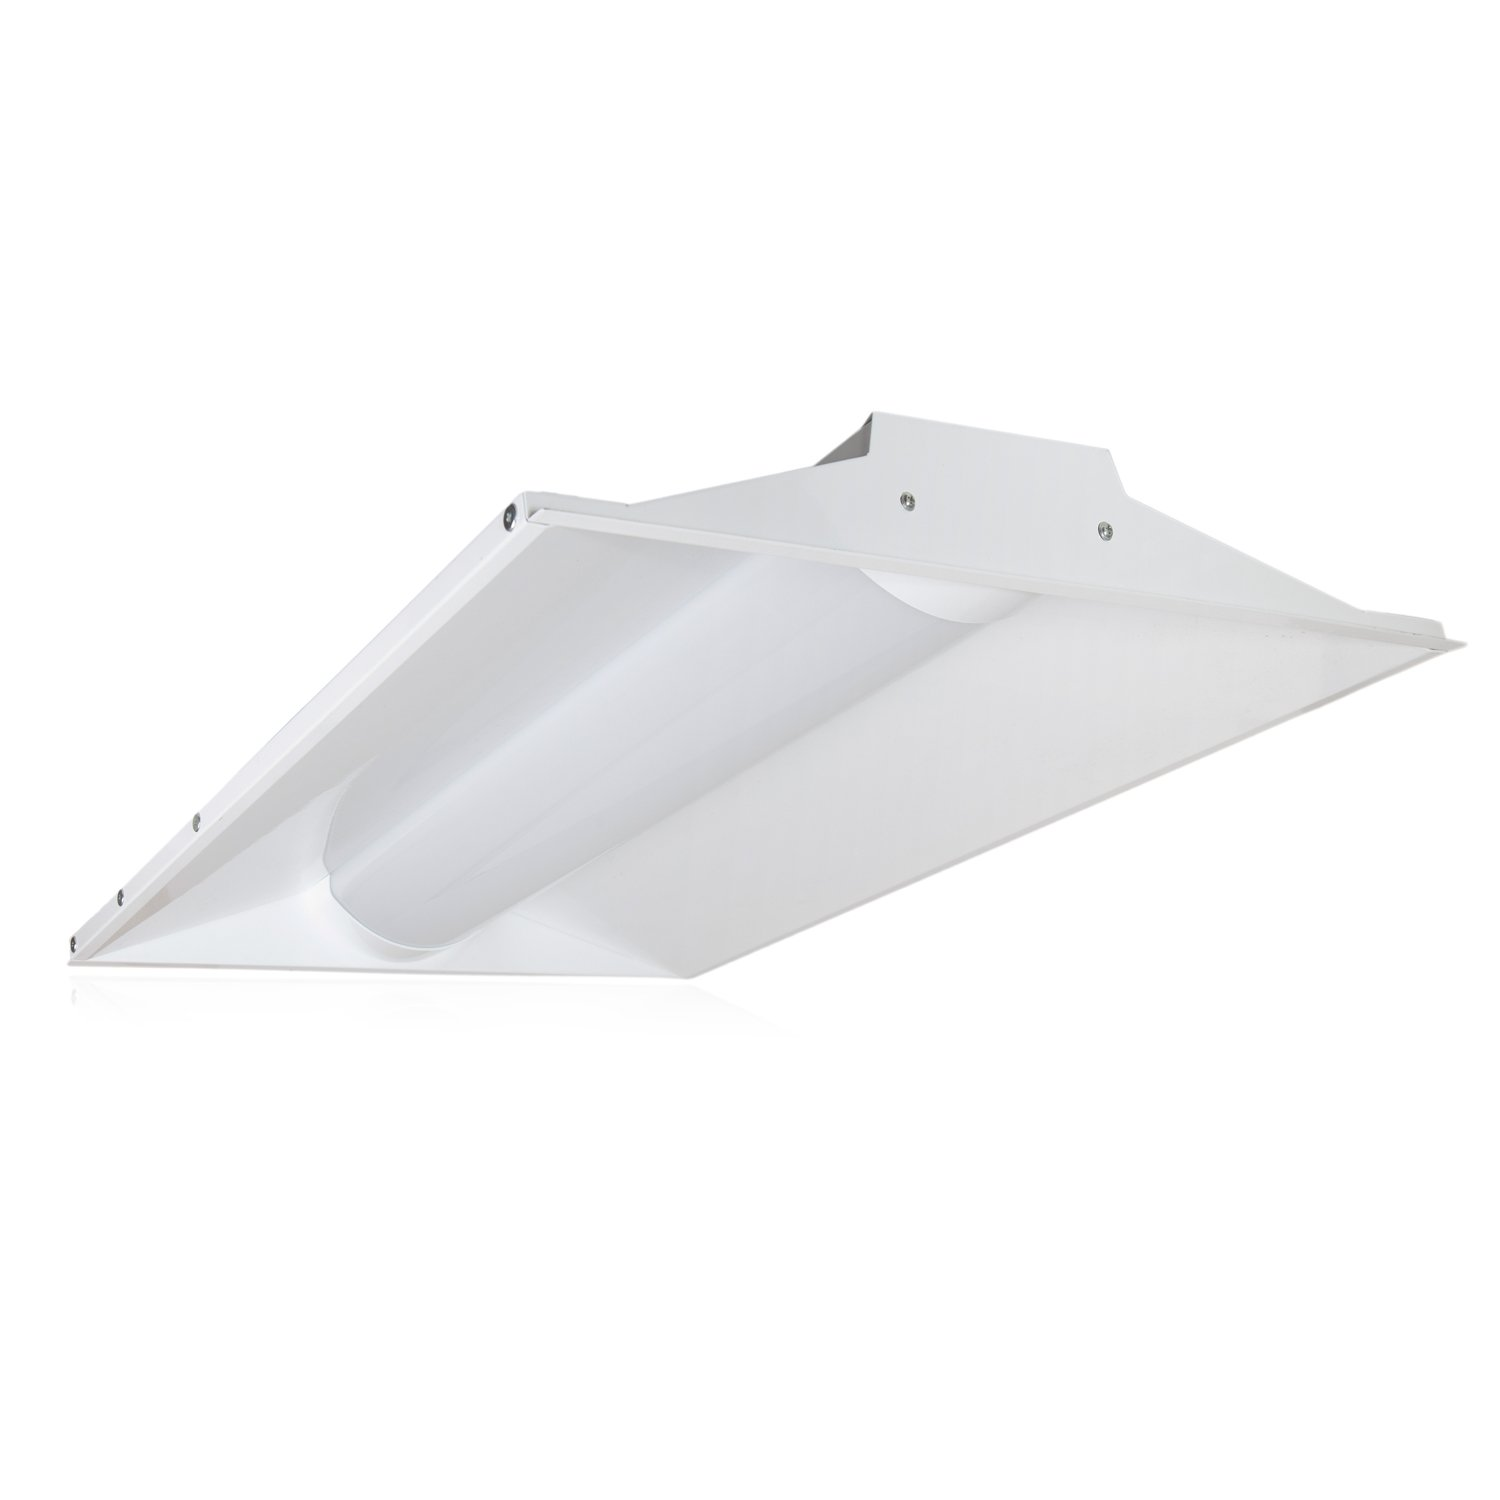 Maxxima 2 ft. x 2 ft. LED Troffer Light Fixture 40W Color Temperature Select Switch to Choose 3000K, 4000K, 5000K, Dimmable, 4400 Lumens